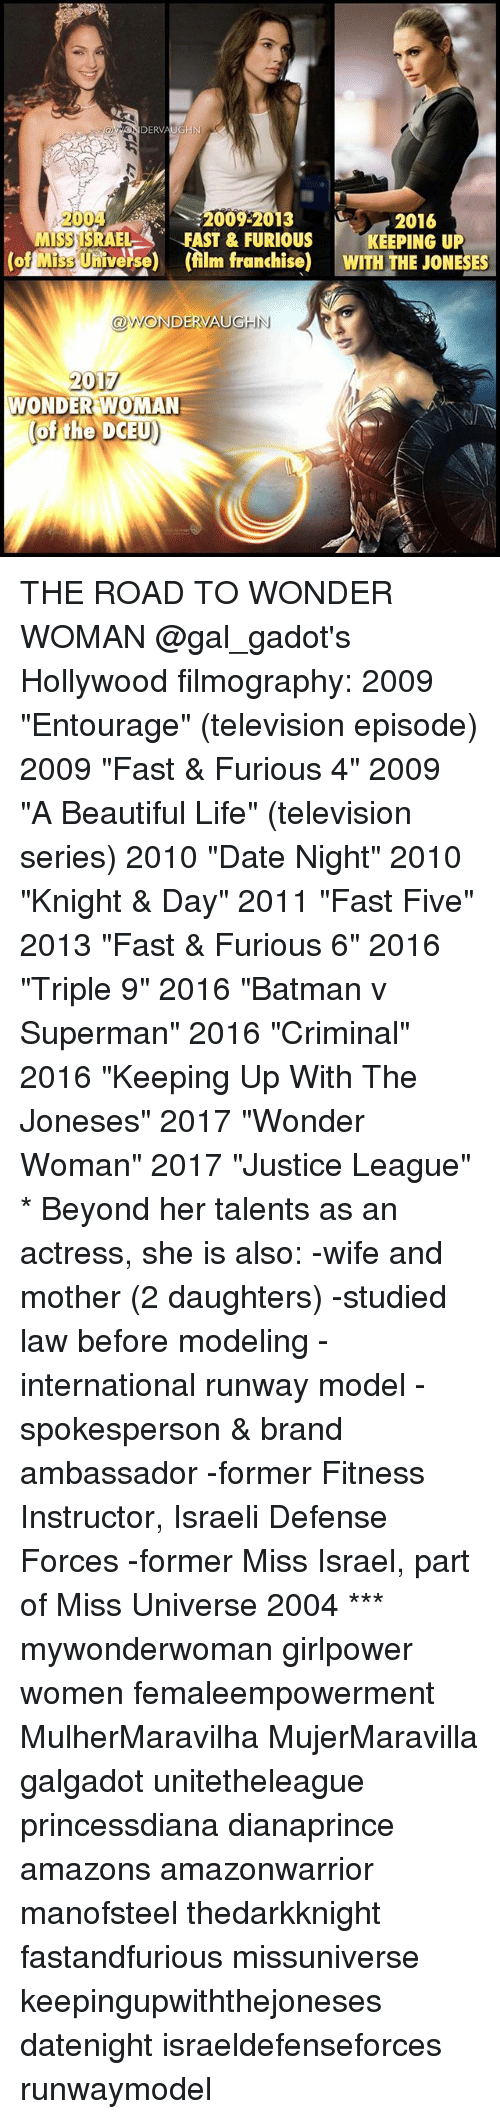 """Batman, Beautiful, and Life: DERVAUGHN  A2004  2016  MS3 ISRAEL A FAST & FURIOUS  KEEPING UP  Miss U  (film franchise) WITH THE JONESES  ODWONDERVAUGHN  2017  WONDER WOMAN  of the DCEU) THE ROAD TO WONDER WOMAN @gal_gadot's Hollywood filmography: 2009 """"Entourage"""" (television episode) 2009 """"Fast & Furious 4"""" 2009 """"A Beautiful Life"""" (television series) 2010 """"Date Night"""" 2010 """"Knight & Day"""" 2011 """"Fast Five"""" 2013 """"Fast & Furious 6"""" 2016 """"Triple 9"""" 2016 """"Batman v Superman"""" 2016 """"Criminal"""" 2016 """"Keeping Up With The Joneses"""" 2017 """"Wonder Woman"""" 2017 """"Justice League"""" * Beyond her talents as an actress, she is also: -wife and mother (2 daughters) -studied law before modeling -international runway model -spokesperson & brand ambassador -former Fitness Instructor, Israeli Defense Forces -former Miss Israel, part of Miss Universe 2004 *** mywonderwoman girlpower women femaleempowerment MulherMaravilha MujerMaravilla galgadot unitetheleague princessdiana dianaprince amazons amazonwarrior manofsteel thedarkknight fastandfurious missuniverse keepingupwiththejoneses datenight israeldefenseforces runwaymodel"""